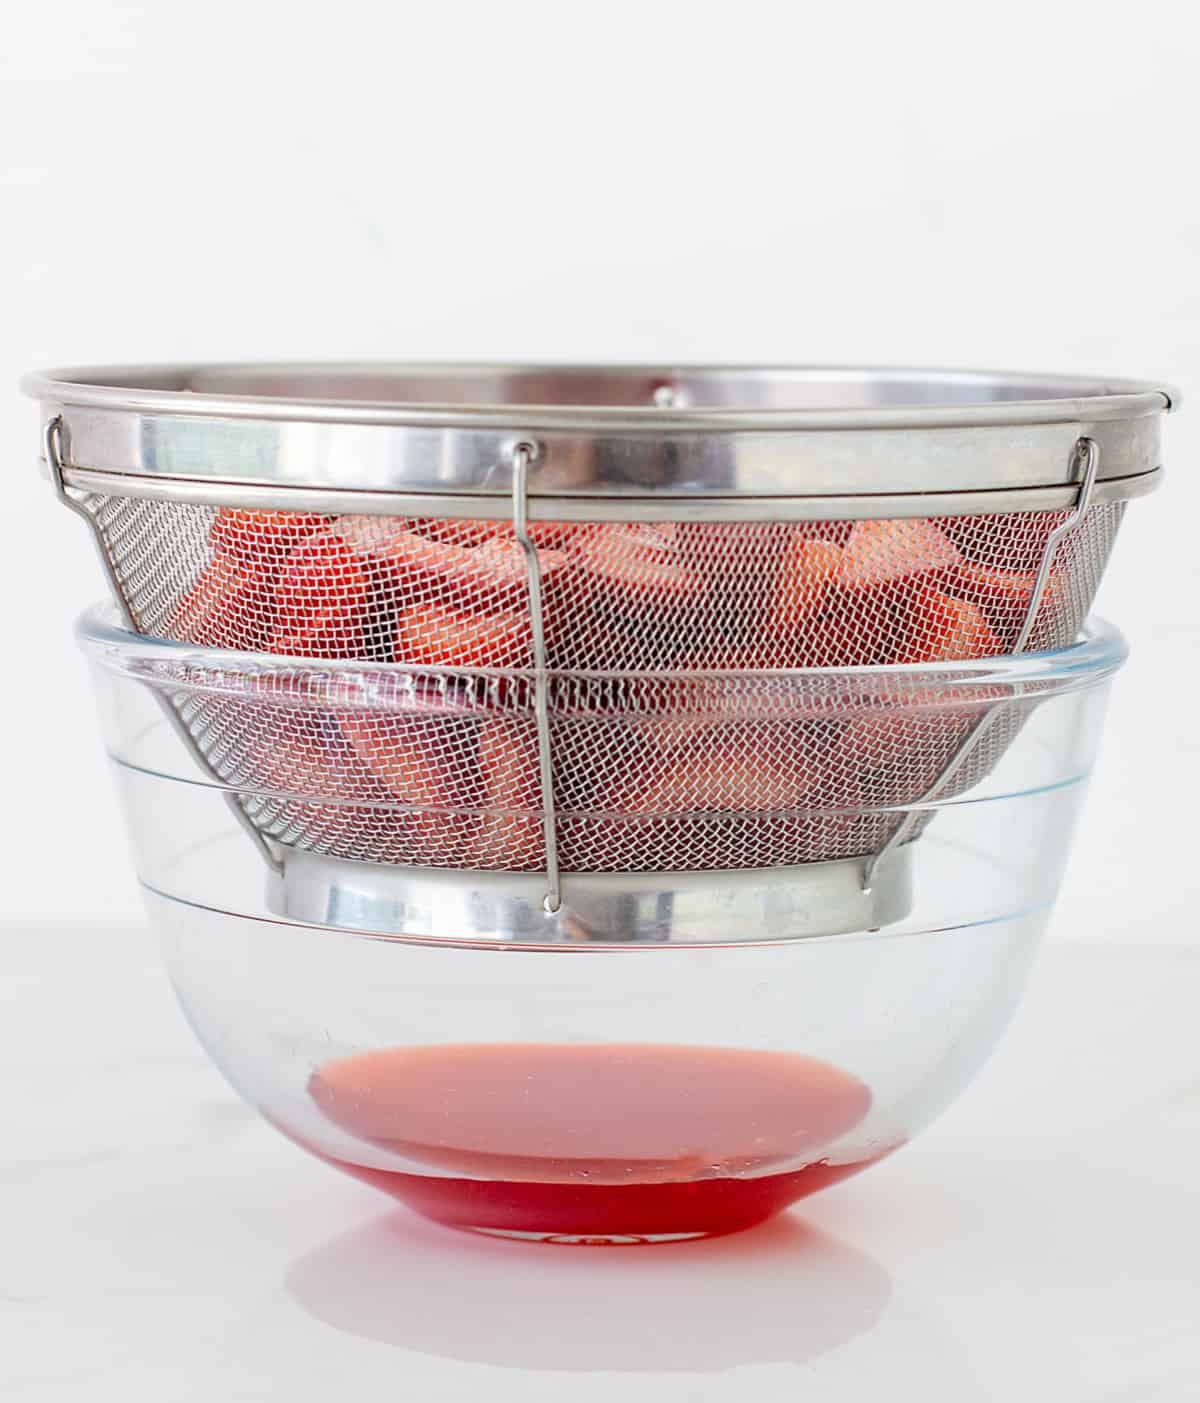 Metal colander with strawberries over a glass bowl, red juice dripping